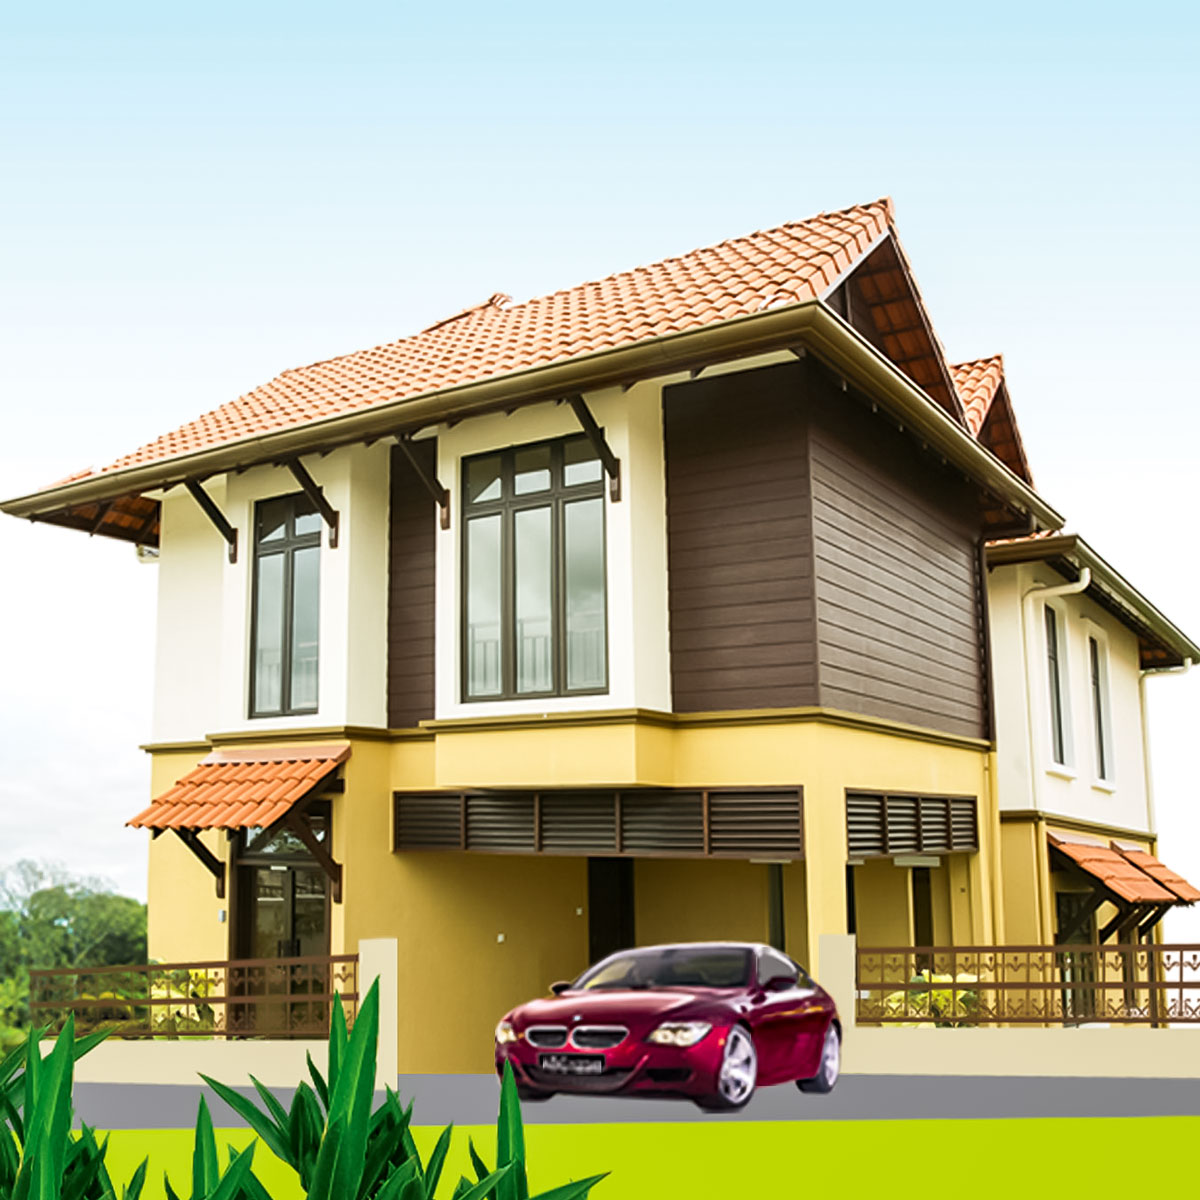 Subang alam homes section 27 shah alam crystalville for Two storey bungalow